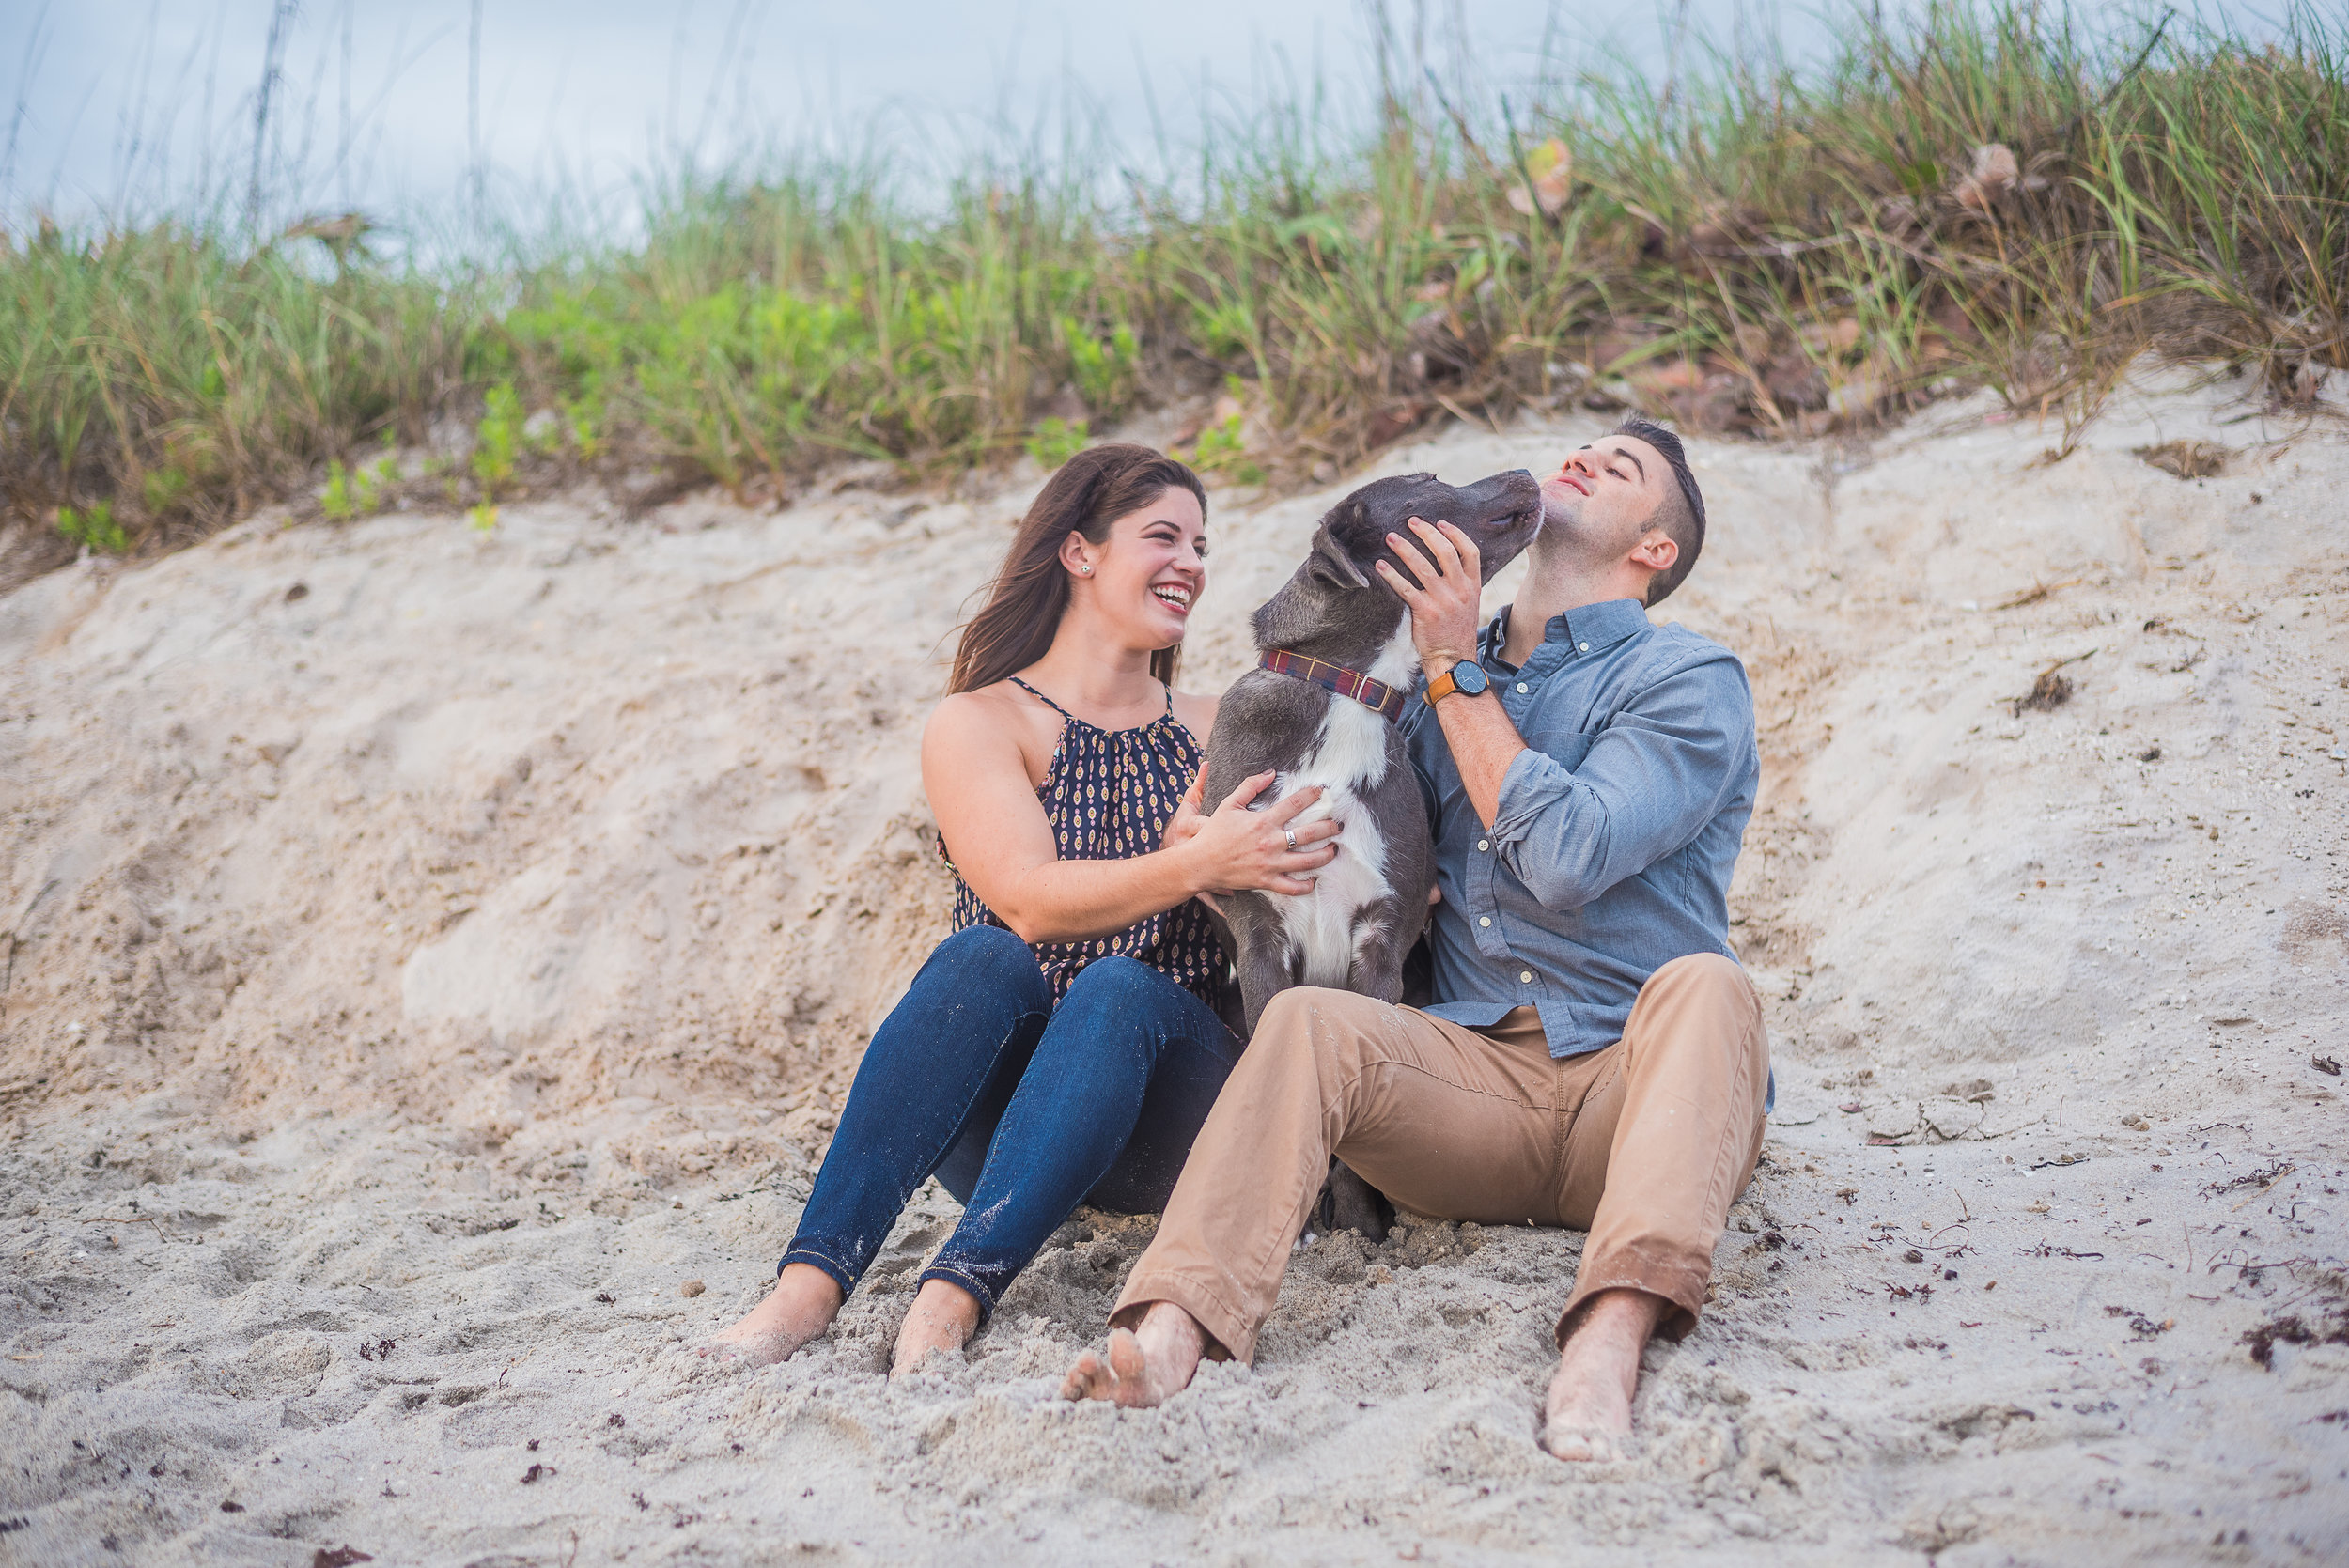 jenna-florida-beach-engagement-photo-1-2.jpg